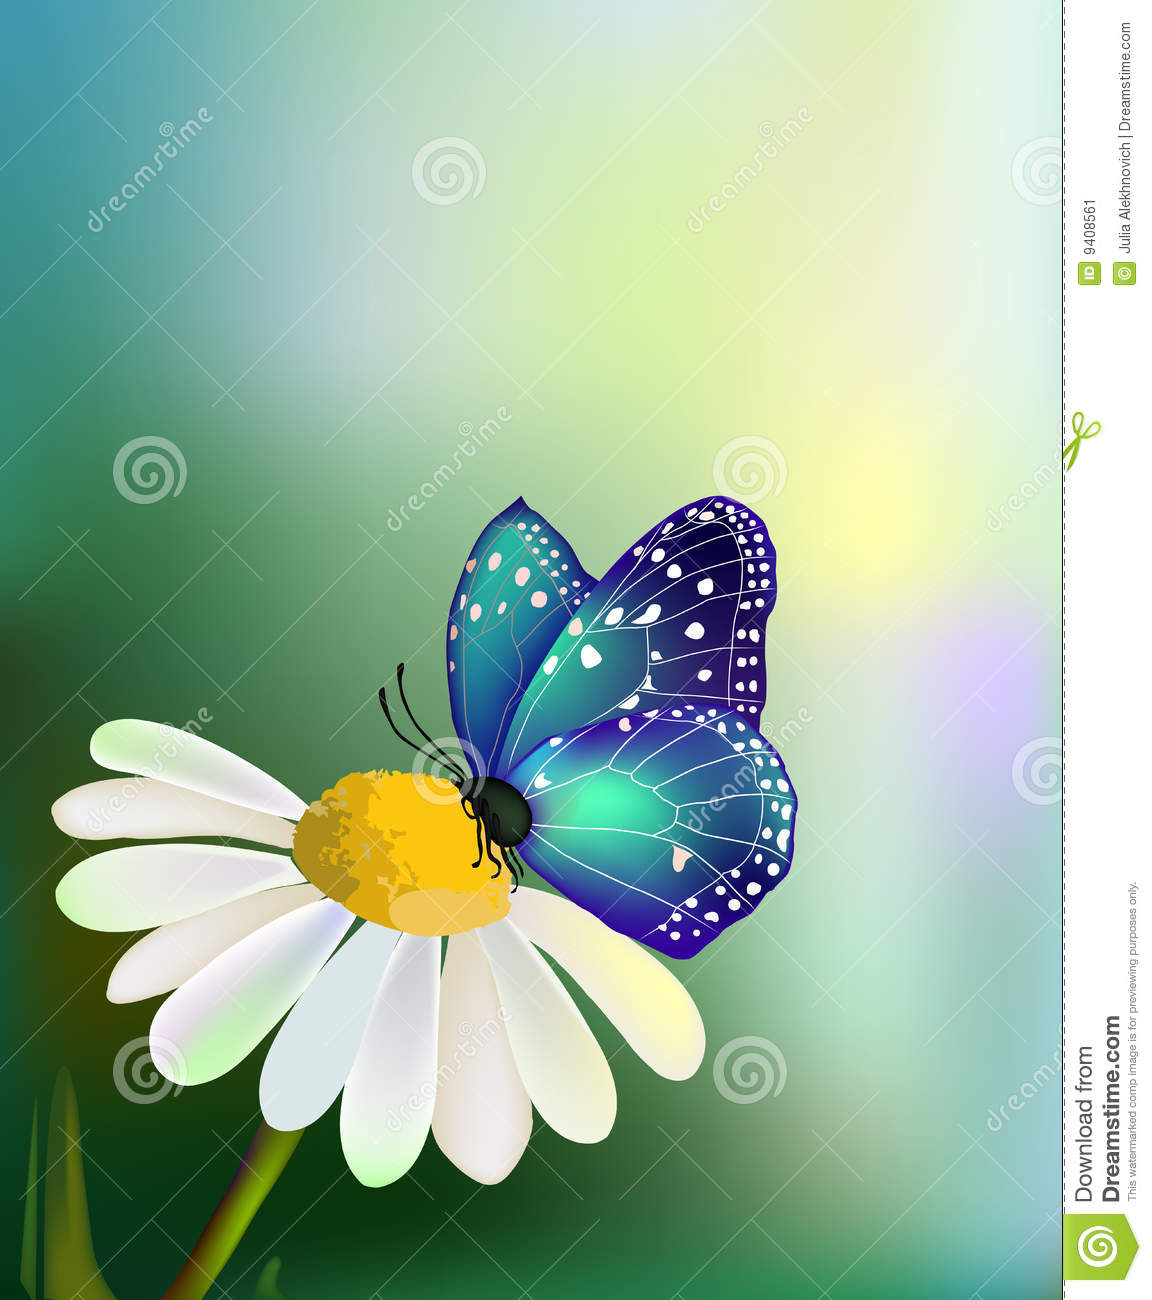 Vector blue butterfly on the daisy flower stock vector vector blue butterfly on the daisy flower izmirmasajfo Gallery